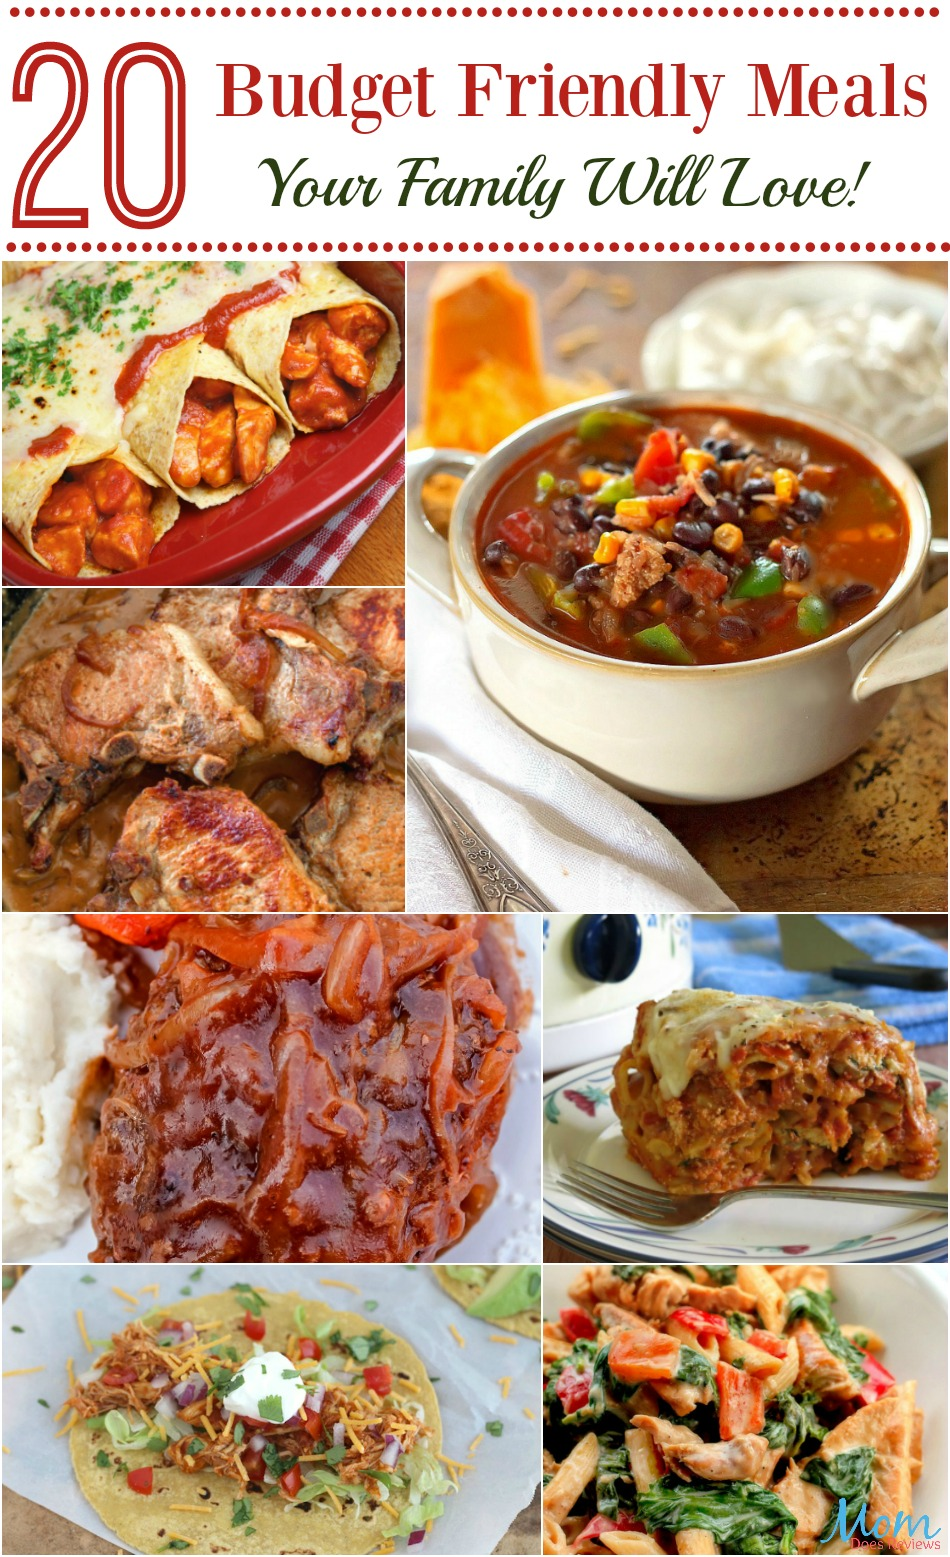 20 Budget Friendly Meals Your Family Will Love! Volume 2 of 2